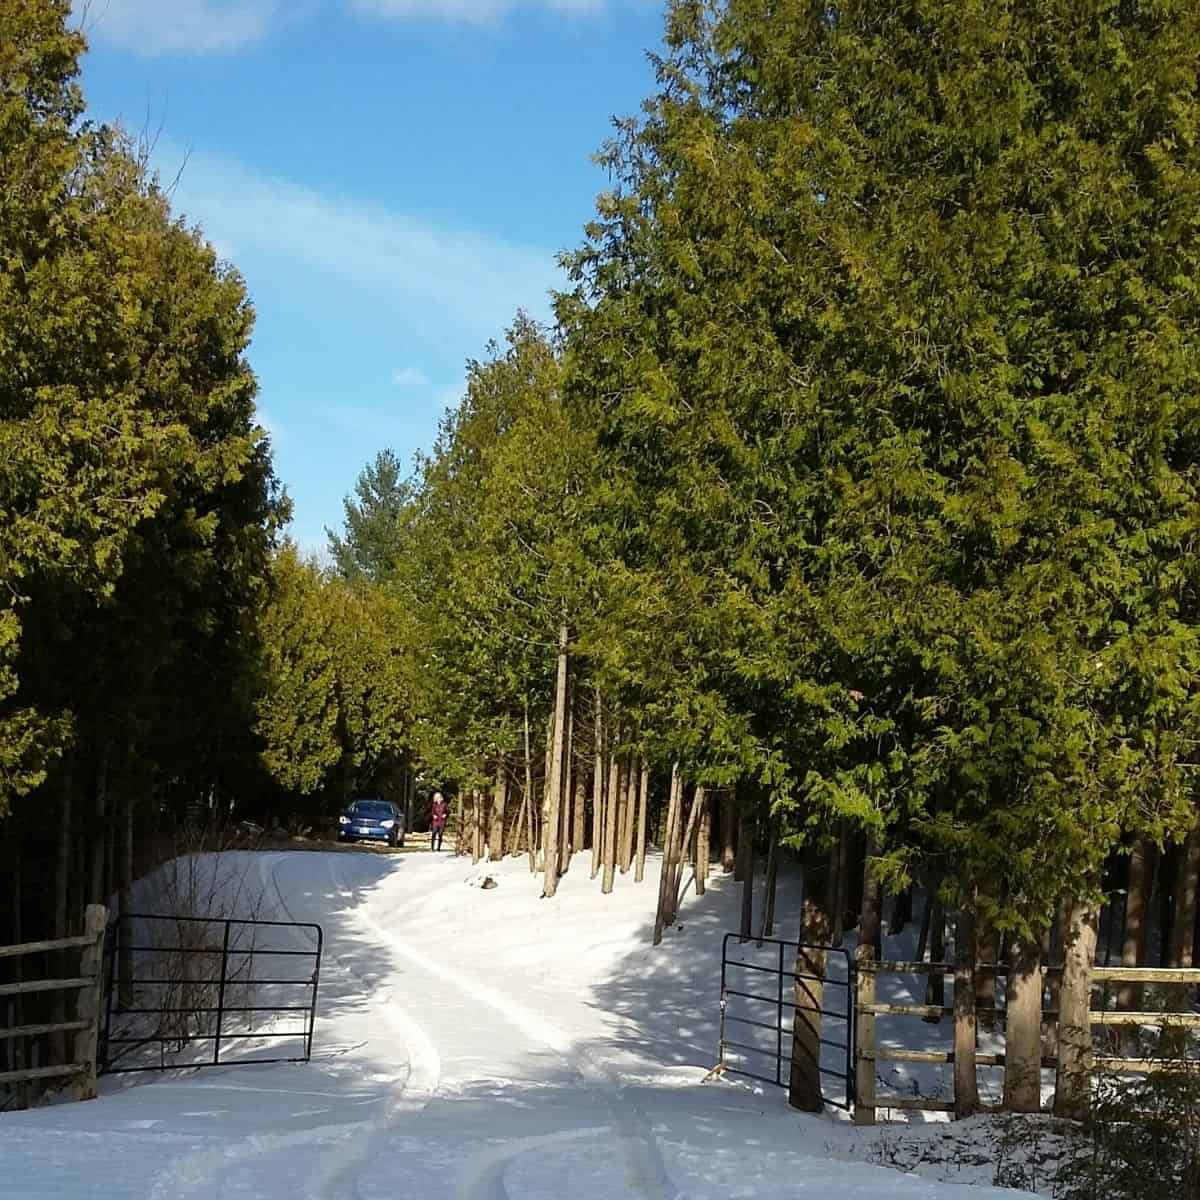 snowy driveway between tall evergreen trees